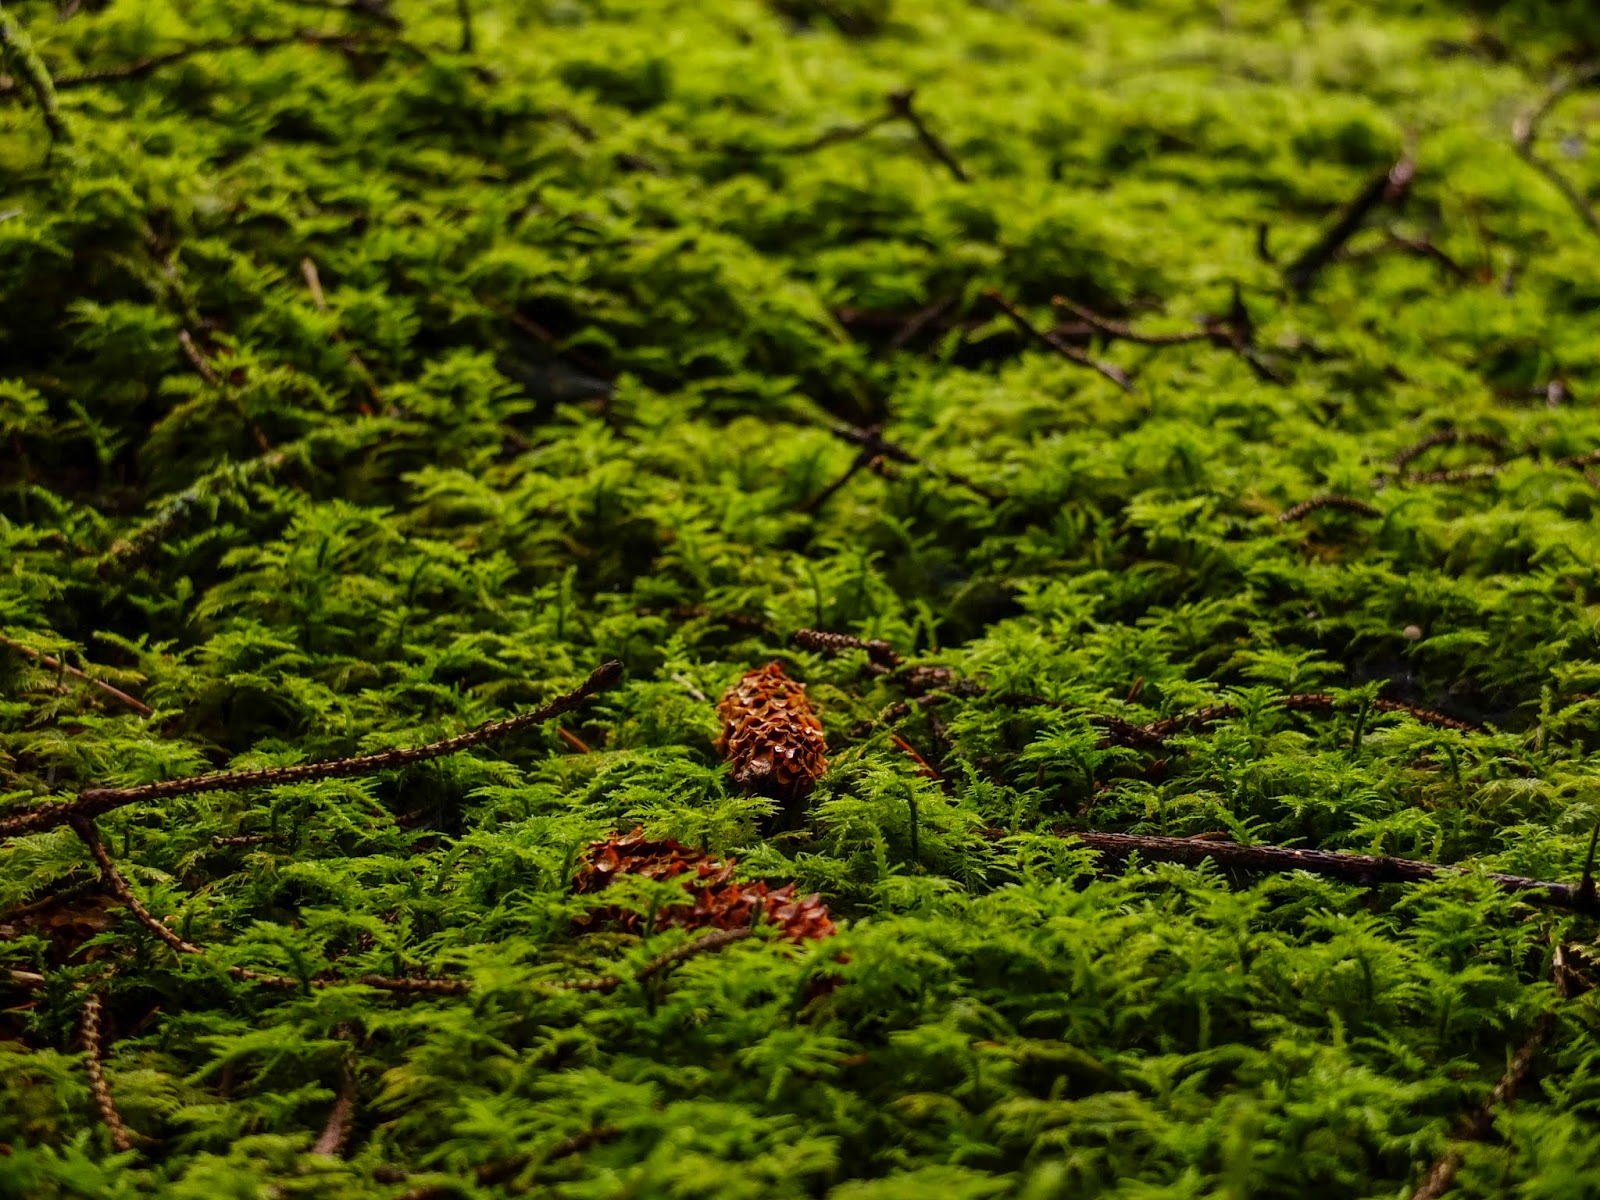 Two brown pine cones lying on a moss covered forest floor.